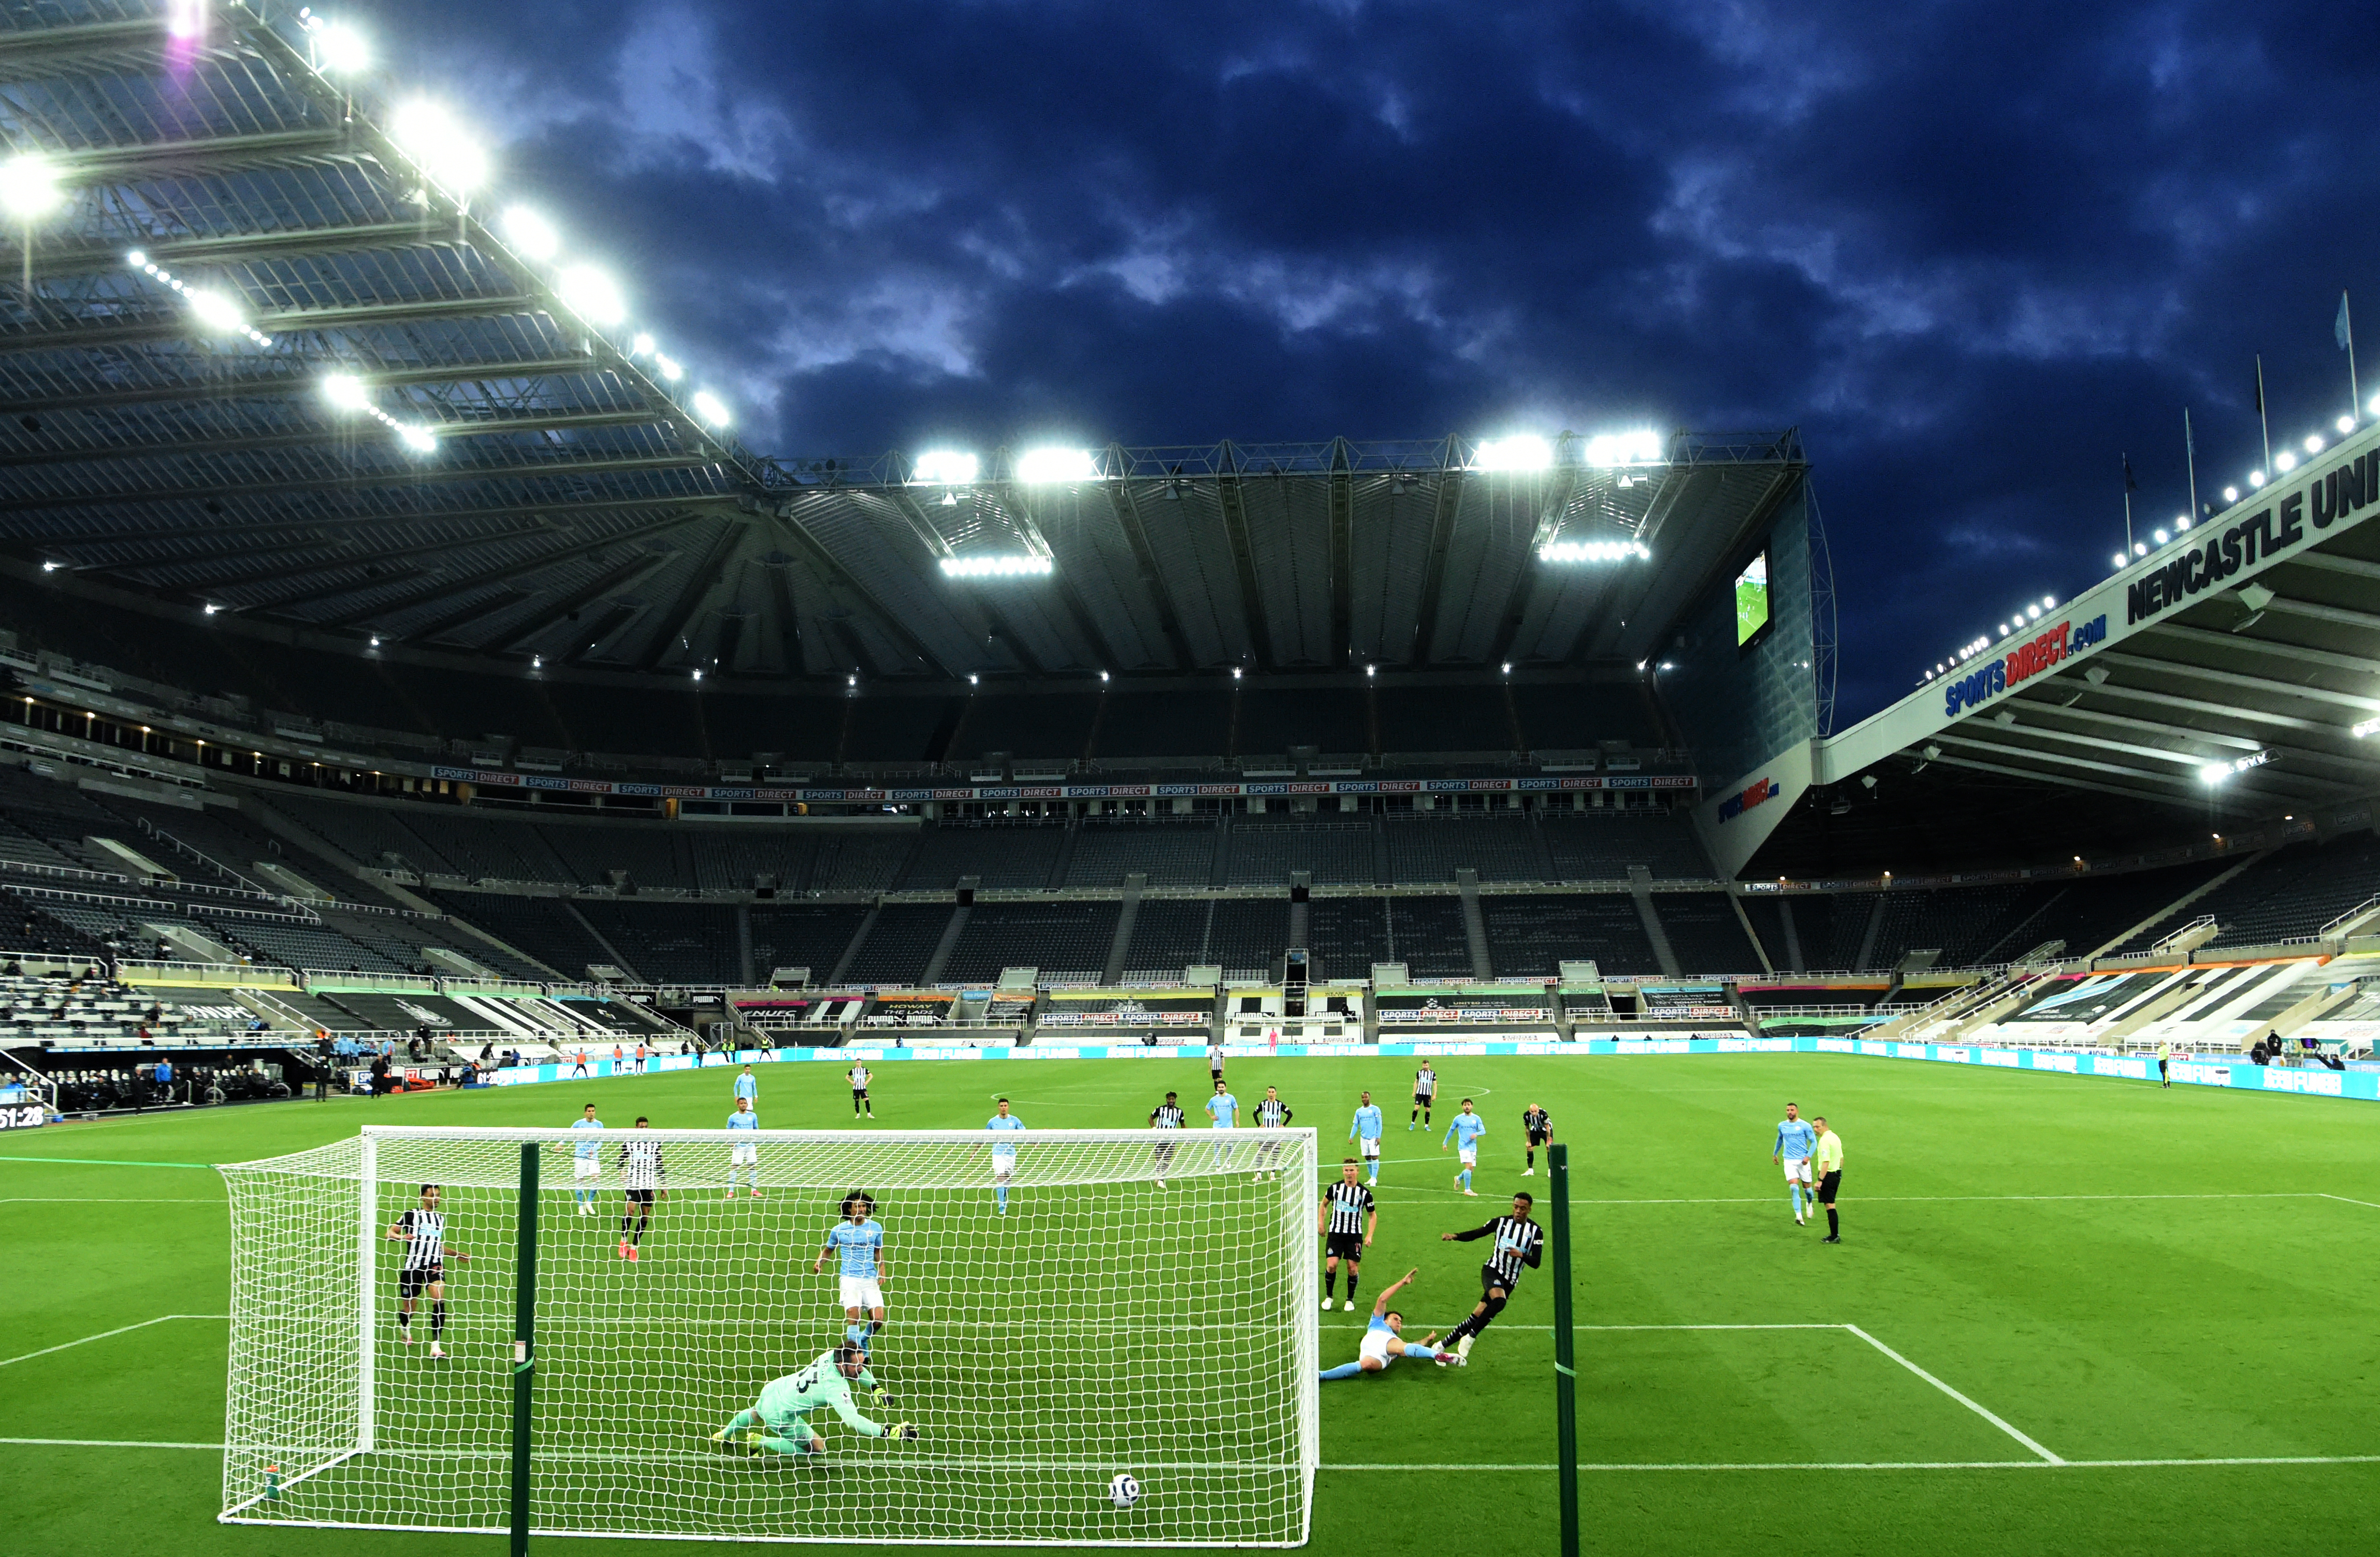 <p>Newcastle United's Joe Willock scores their side's third goal of the game during the Premier League match at St James' Park, Newcastle upon Tyne. Picture date: Friday May 14, 2021.</p>